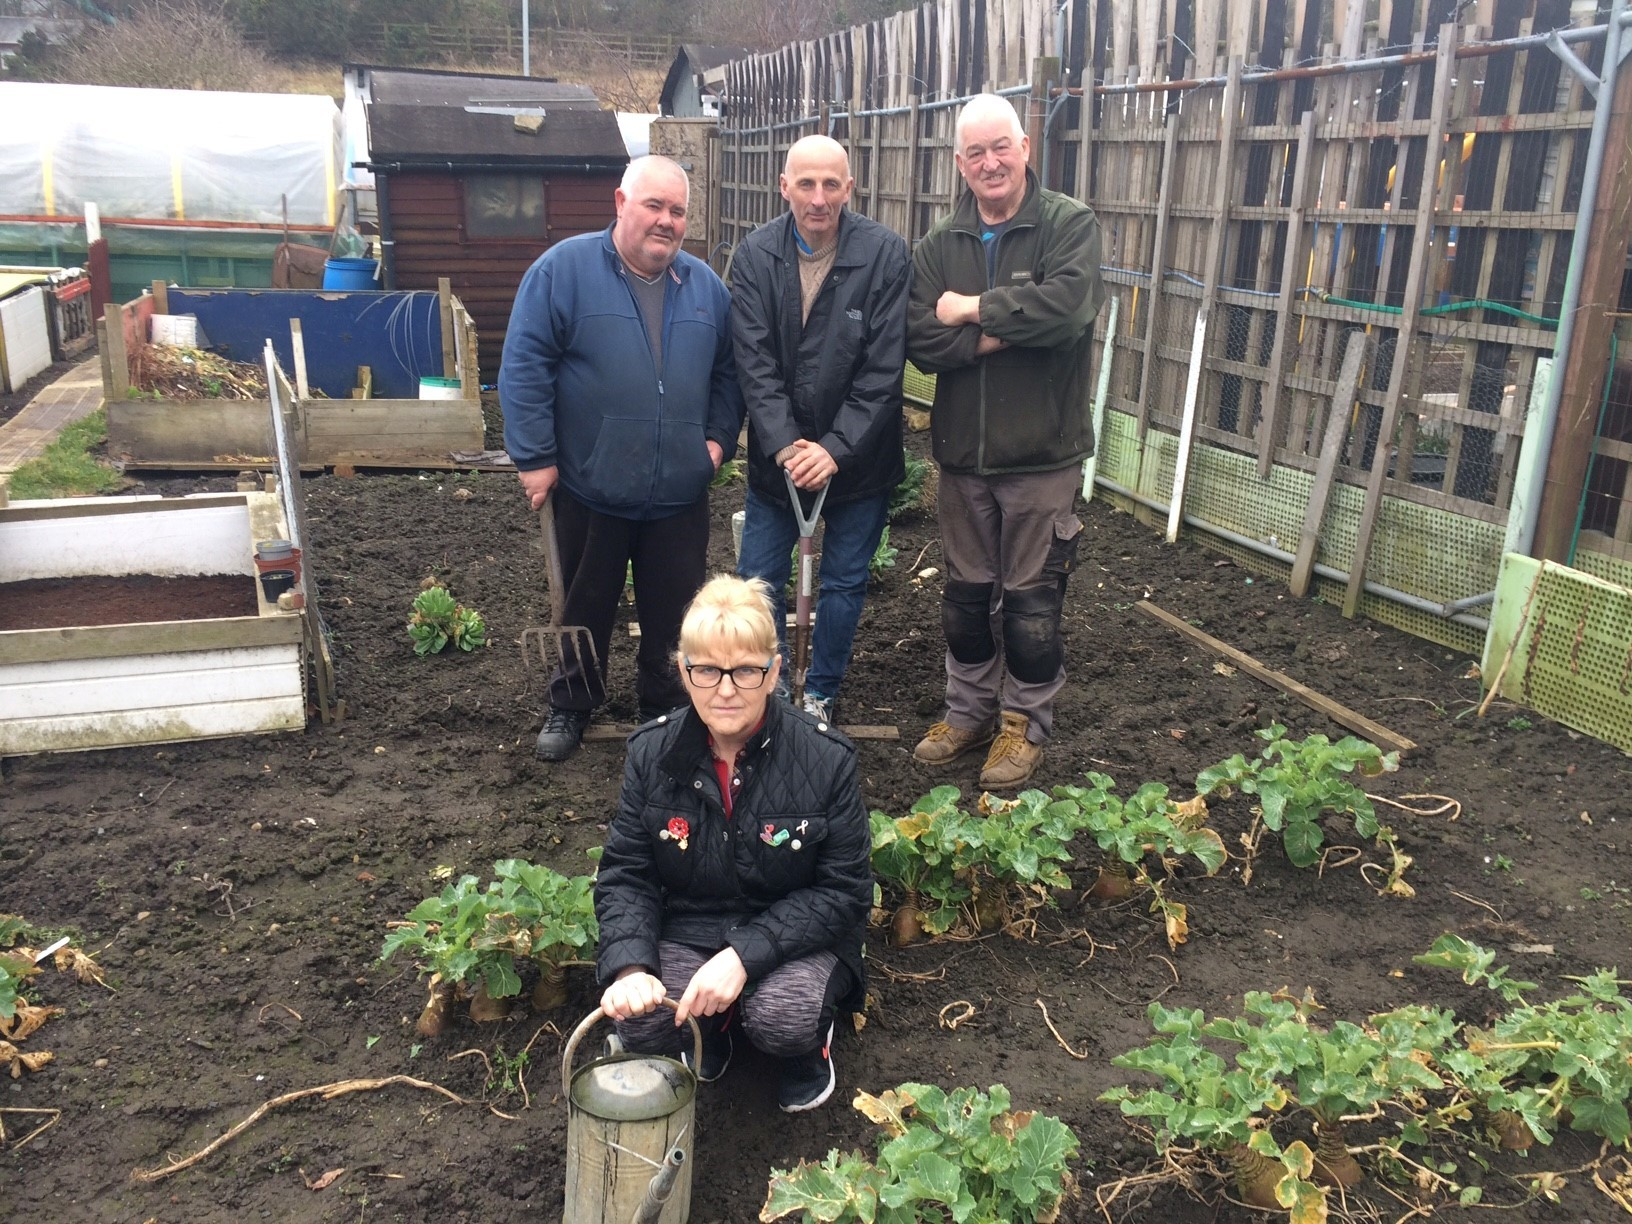 ACTION NEEDED: Allotment holders are concerned at the number of break-ins at their plots. Back row, from left, Richy Stacey, Ken Watson and Alan Kirkbride, with Angela Kirkbride in front.